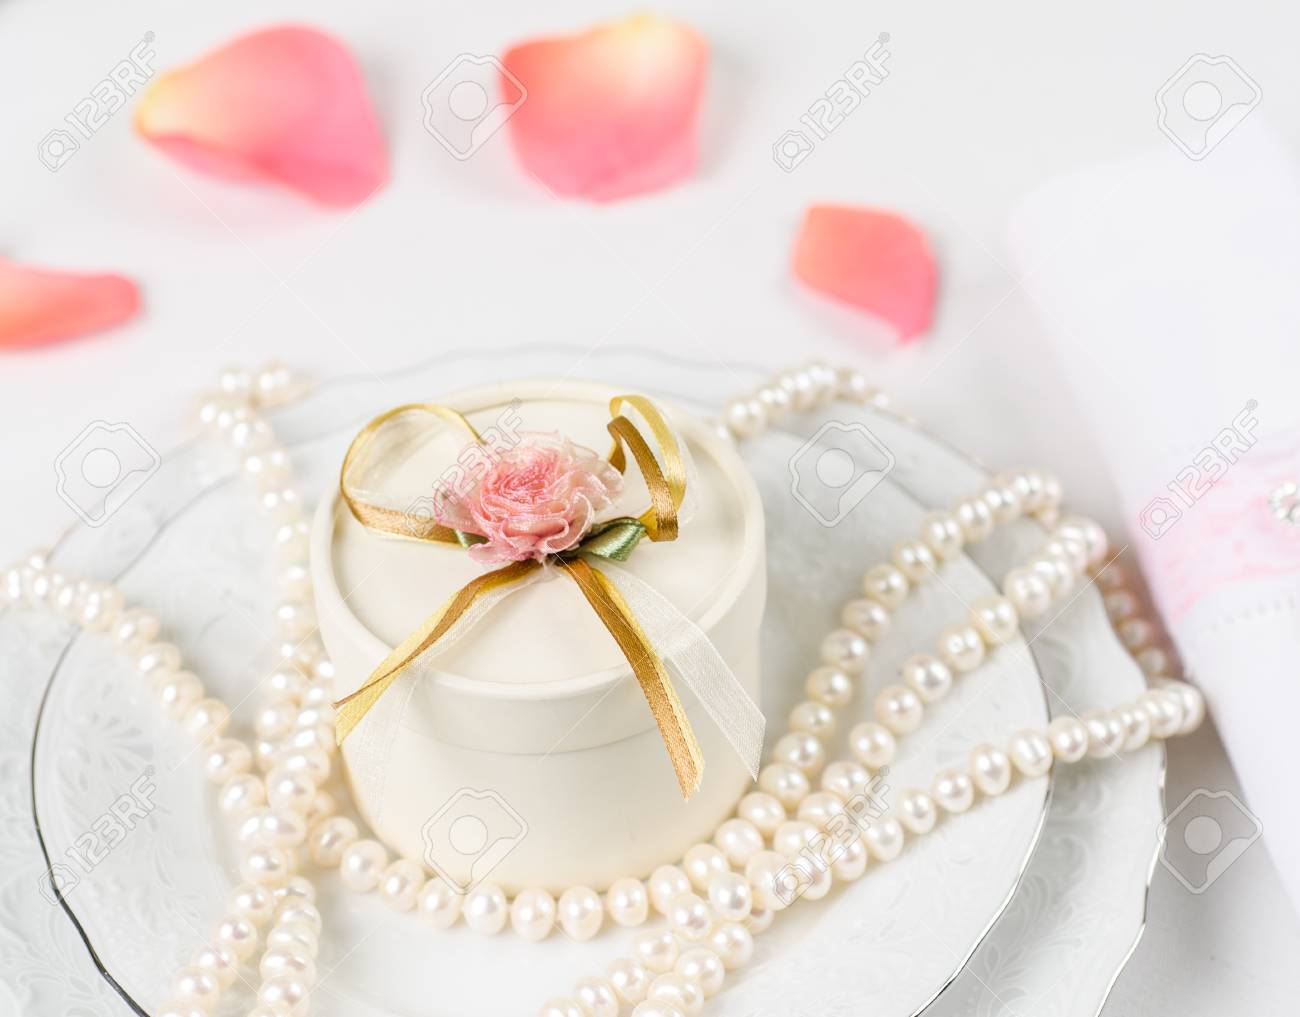 Wedding Table Accessories With Rose Petals And Pearls Stock Photo